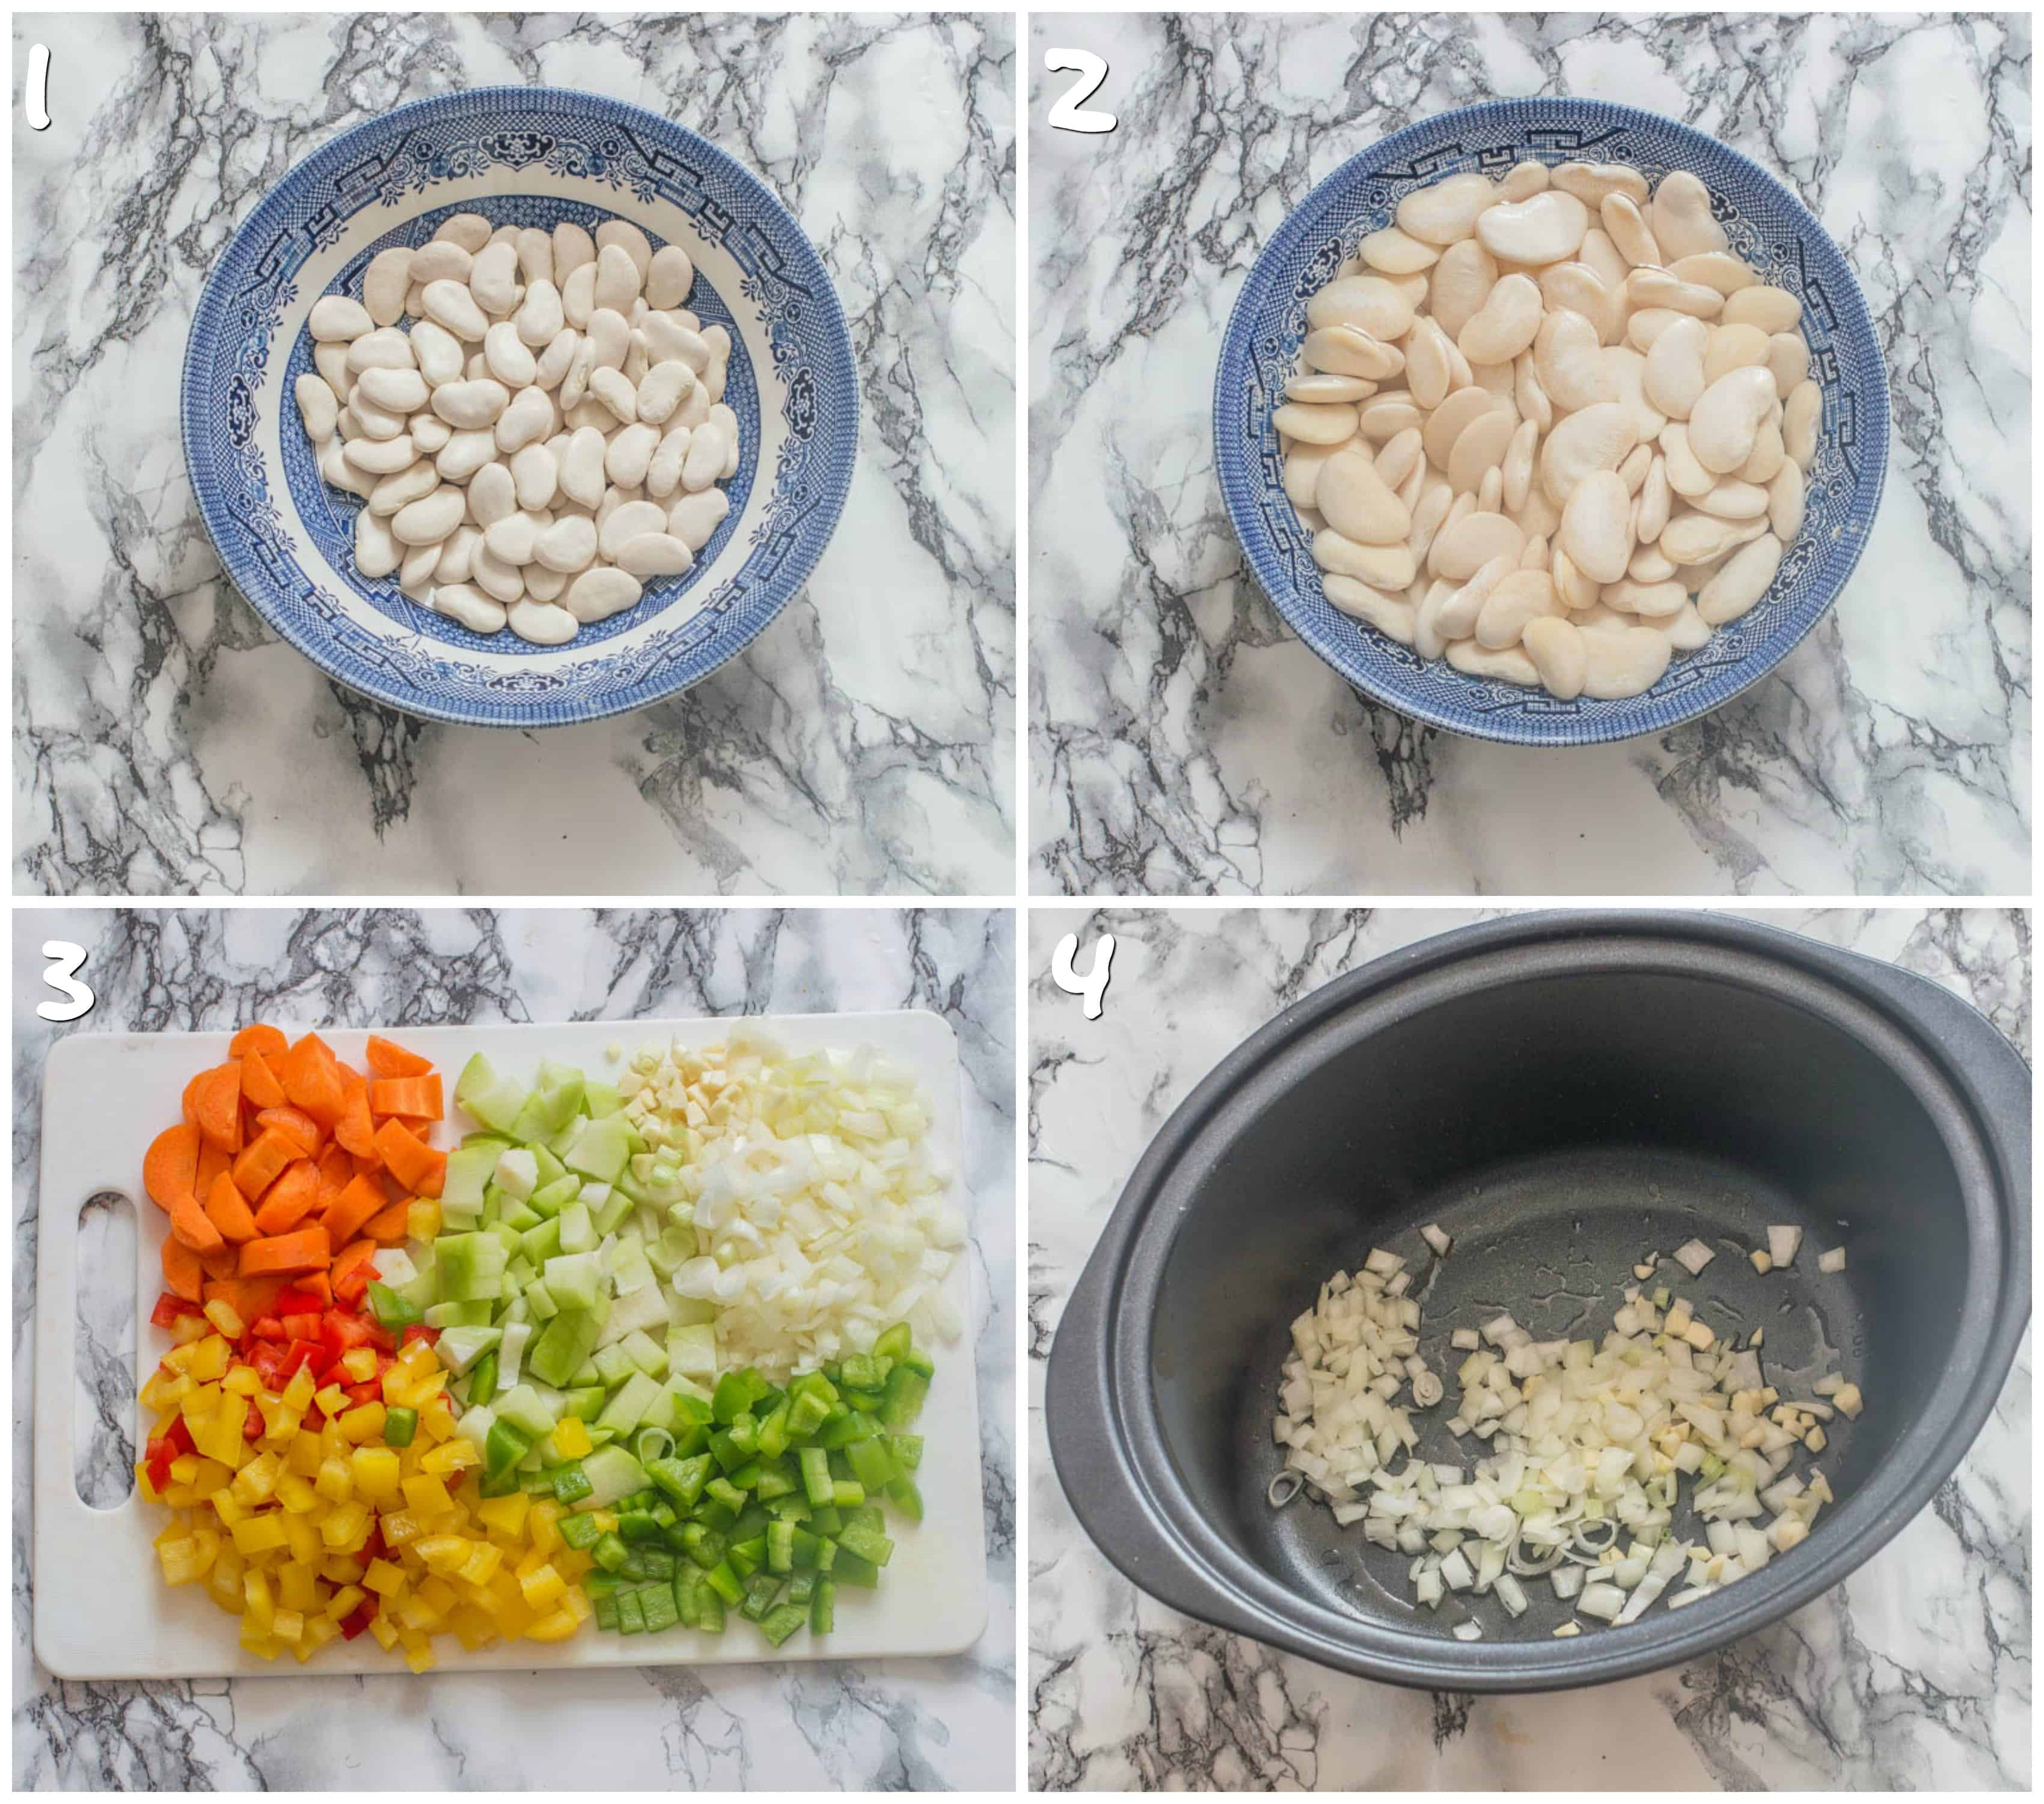 steps 1-4 Soak butter beans and sauteing the vegetables